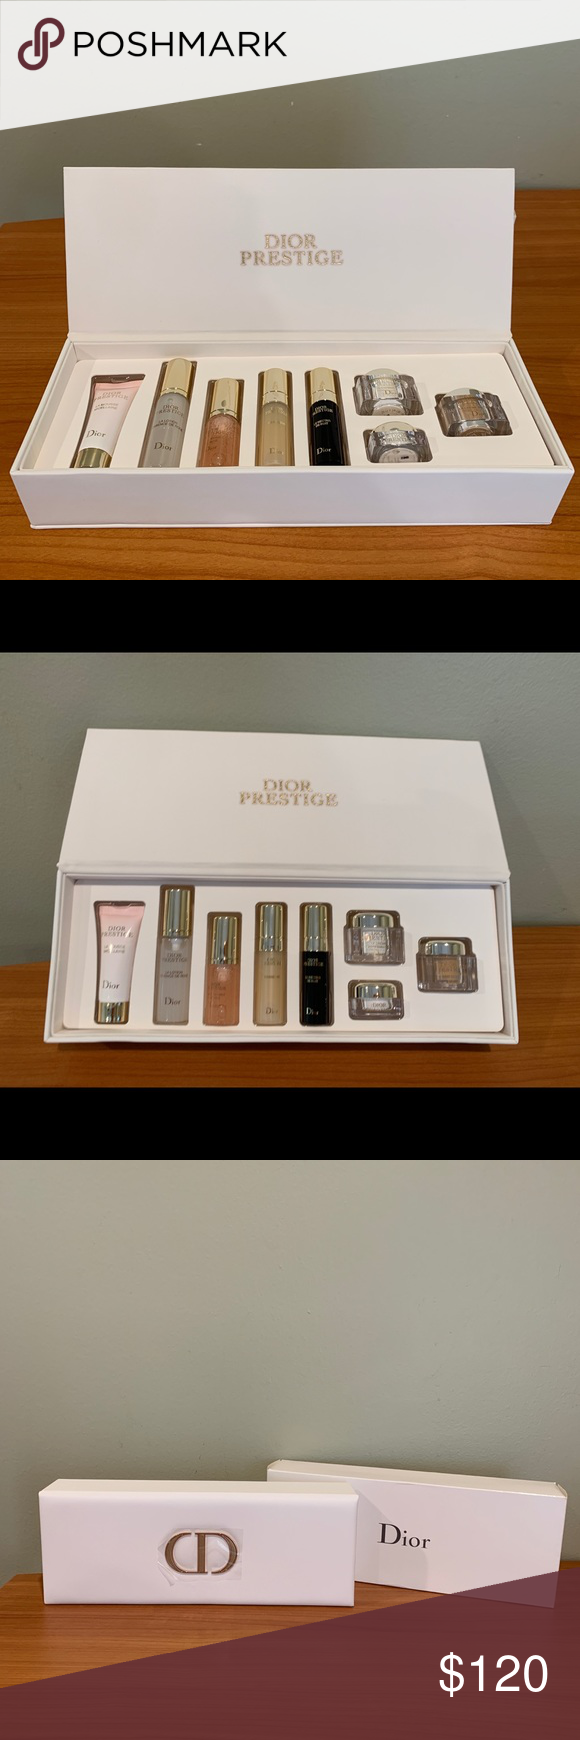 Dior Prestige Care Gift Kit Brand New Comes With The Original Box And Packaging La Mousse Micellaire 10 G 0 35 Oz La Lotion E Gift Kit Things To Sell Dior